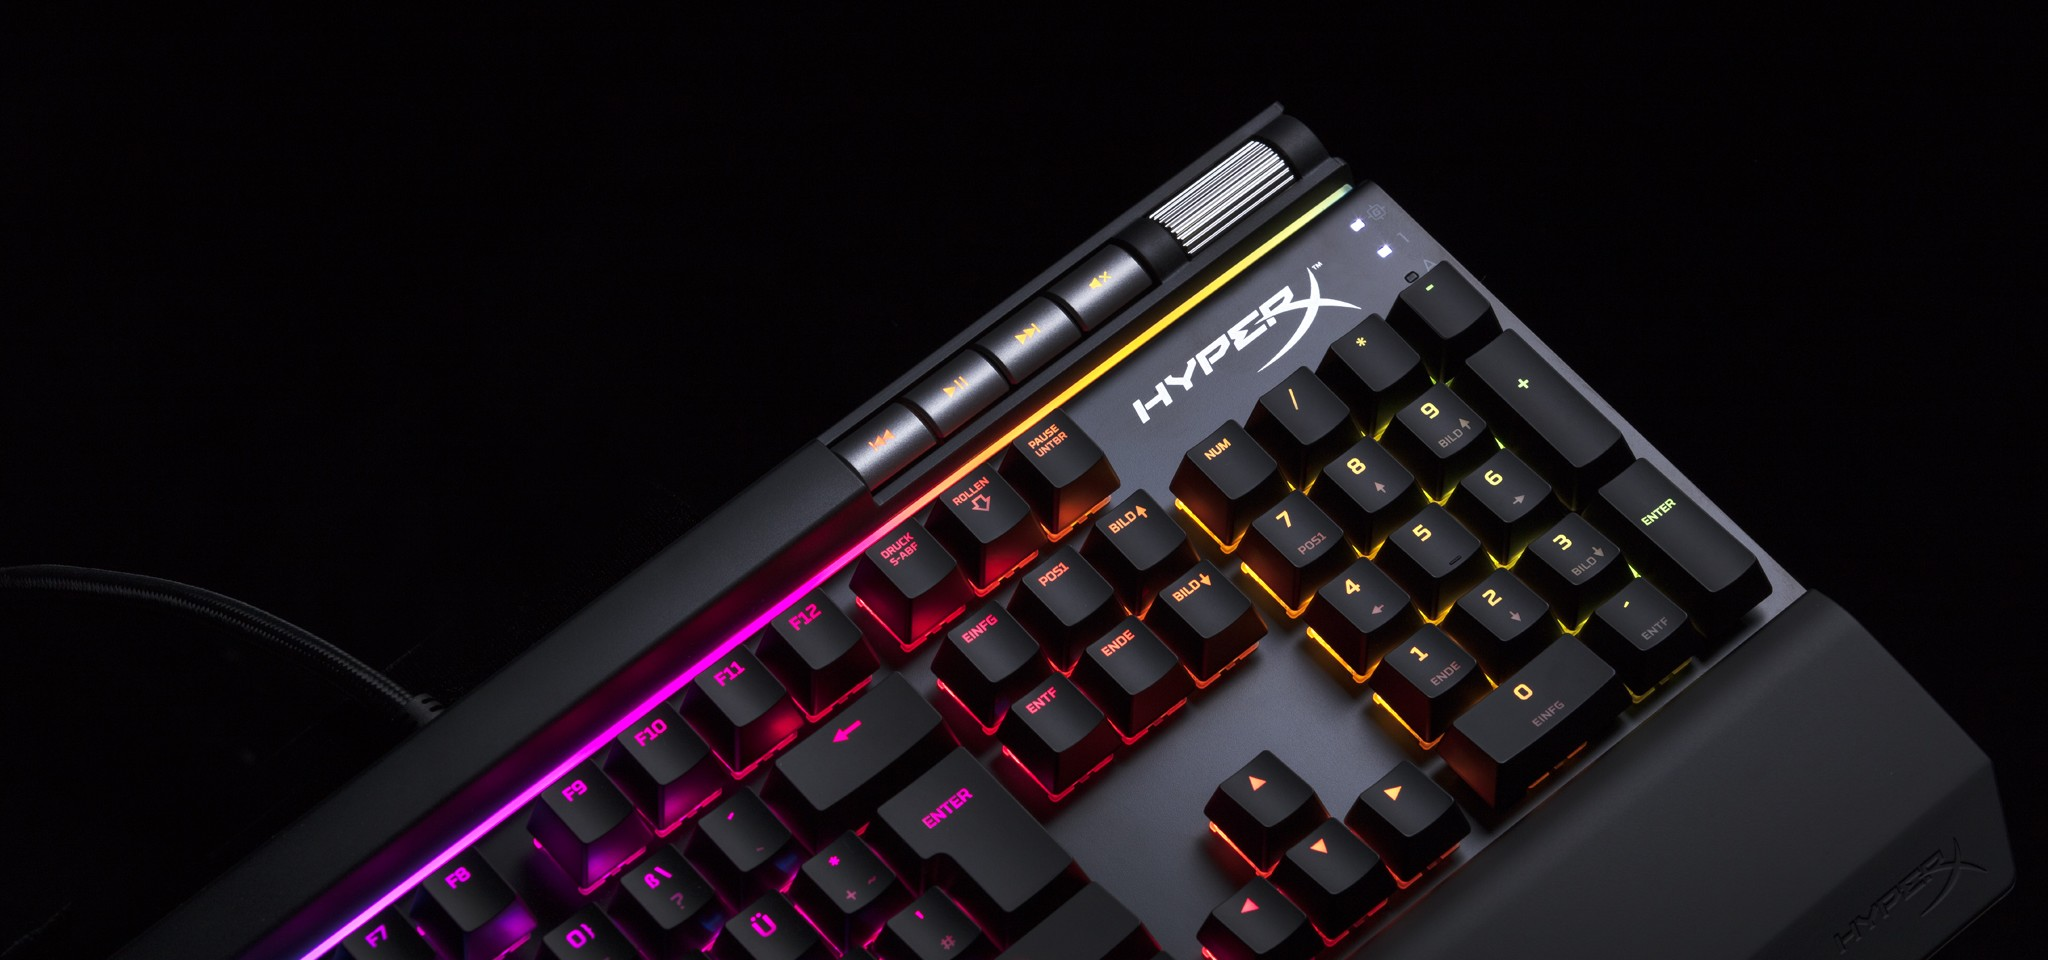 df4f7bb0af1 ... gaming accessories market, after picking up a 2018 iF Design Award for  its well-praised Cloud Flight Wireless Headset and new Alloy Elite RBG  Keyboard.